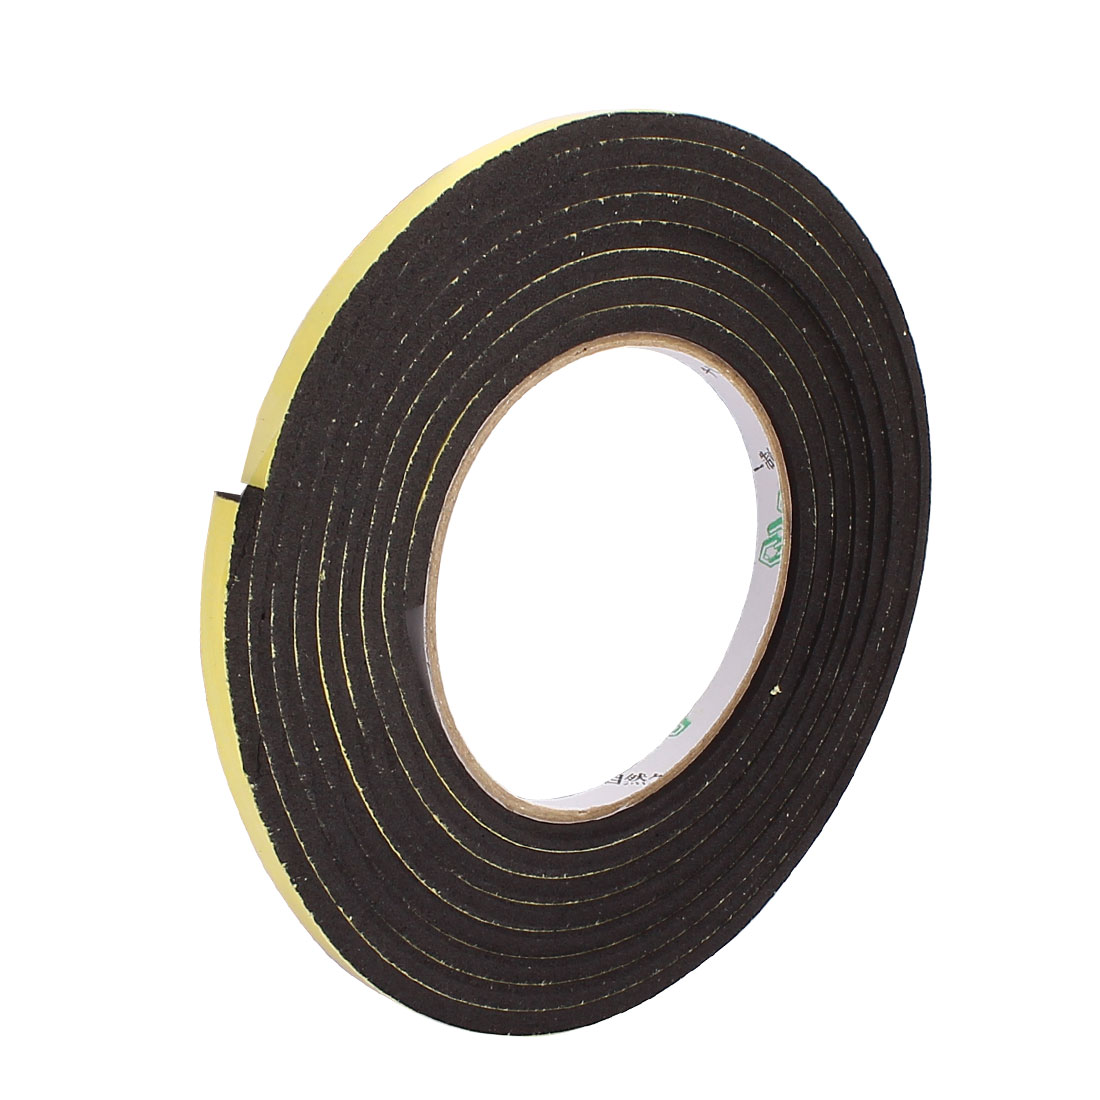 0.6CM Wide 3Meters Length 4MM Thick Single Sided Sealing Shockproof Sponge Tape